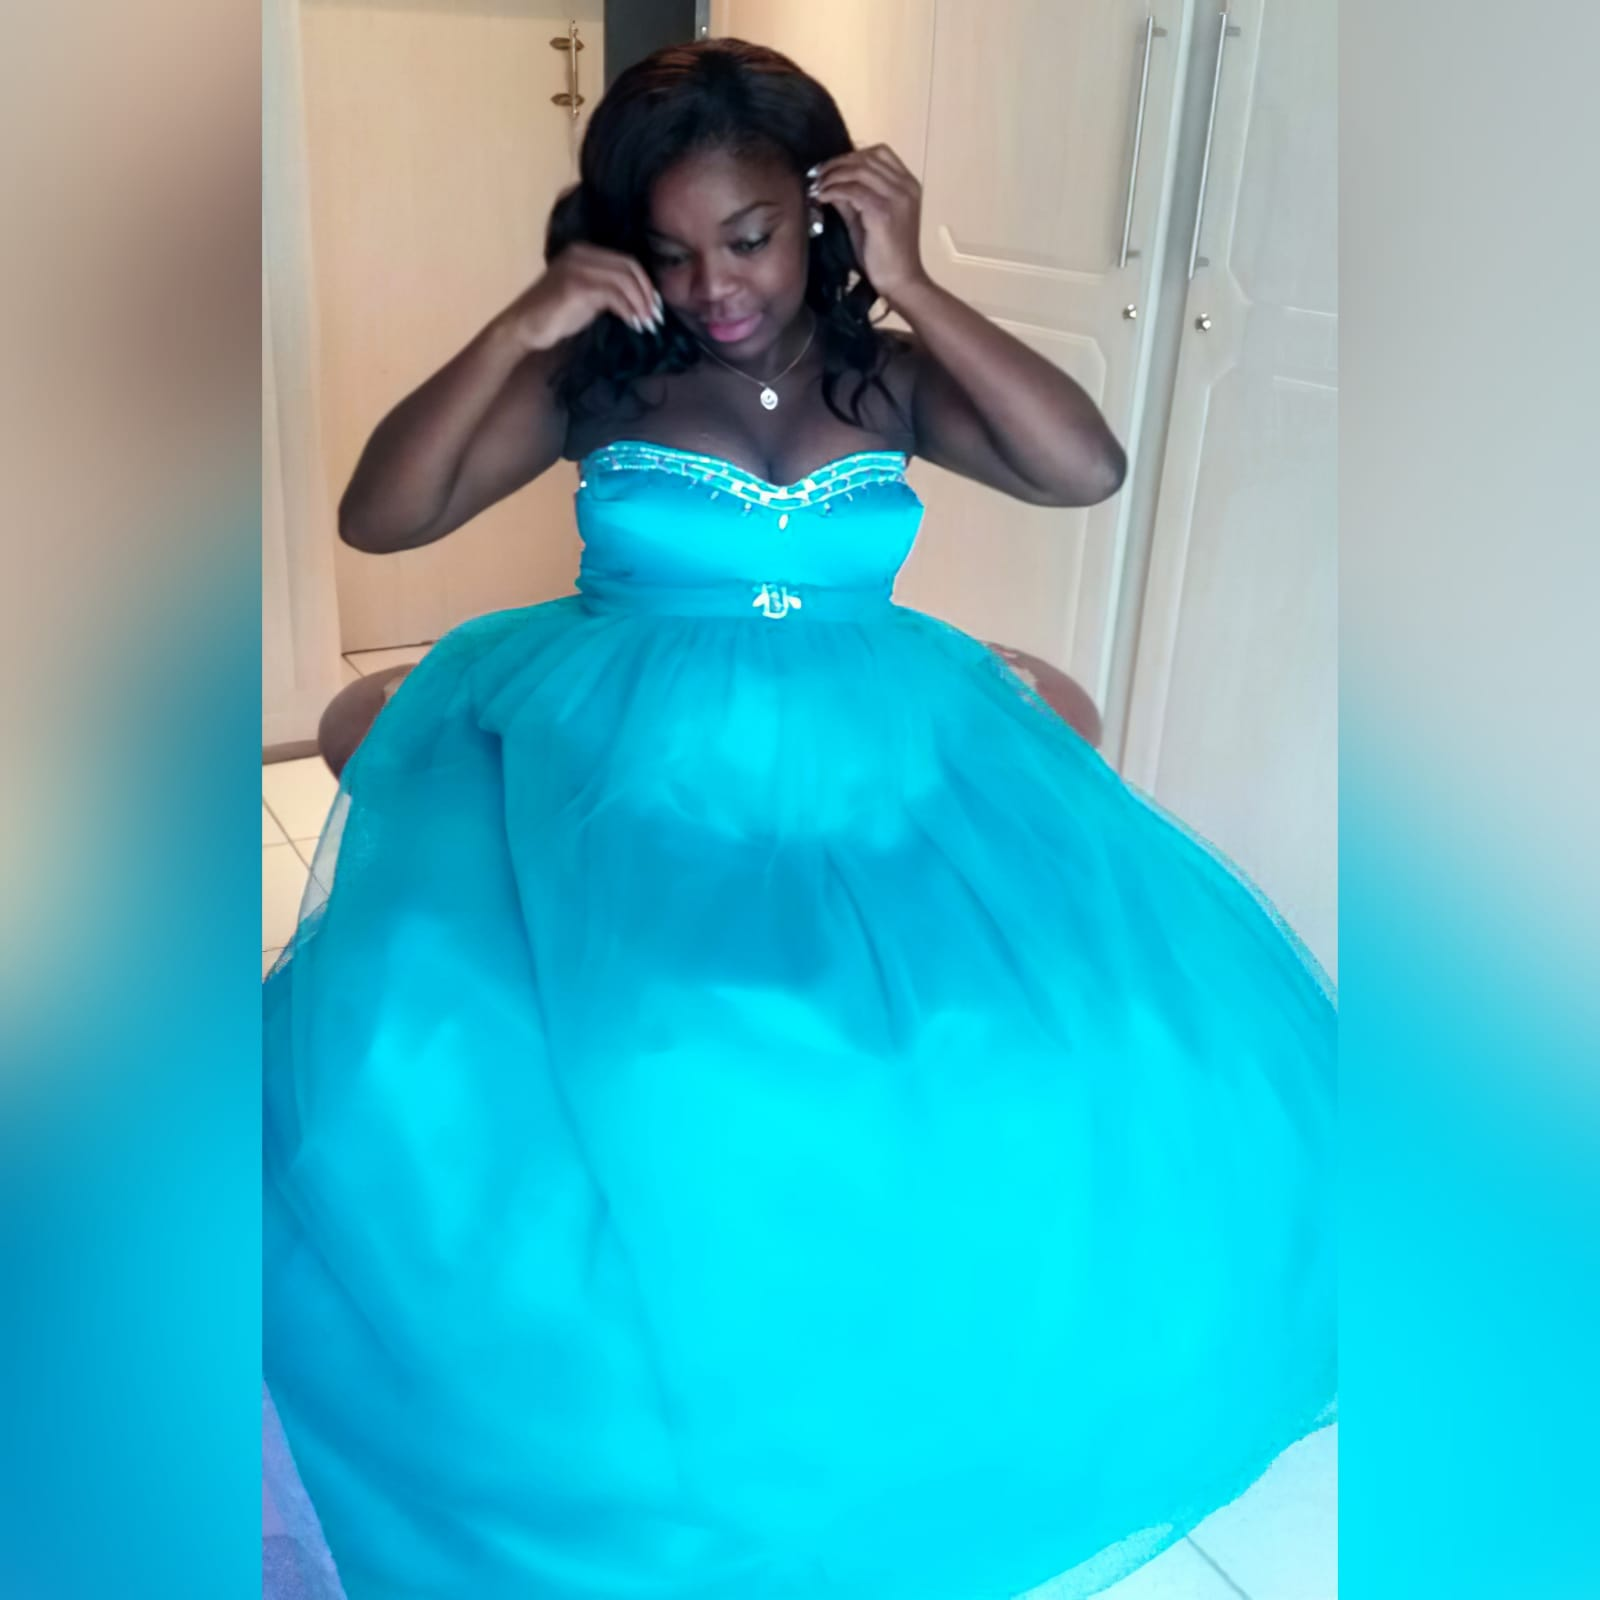 Turquoise and silver ball gown custom made wedding dress 3 turquoise & silver ball gown custom-made wedding dress. With a sweetheart neckline. A lace-up back with an optional back cover panel. Detailed with silver diamante and beads. Ruched belt effect.